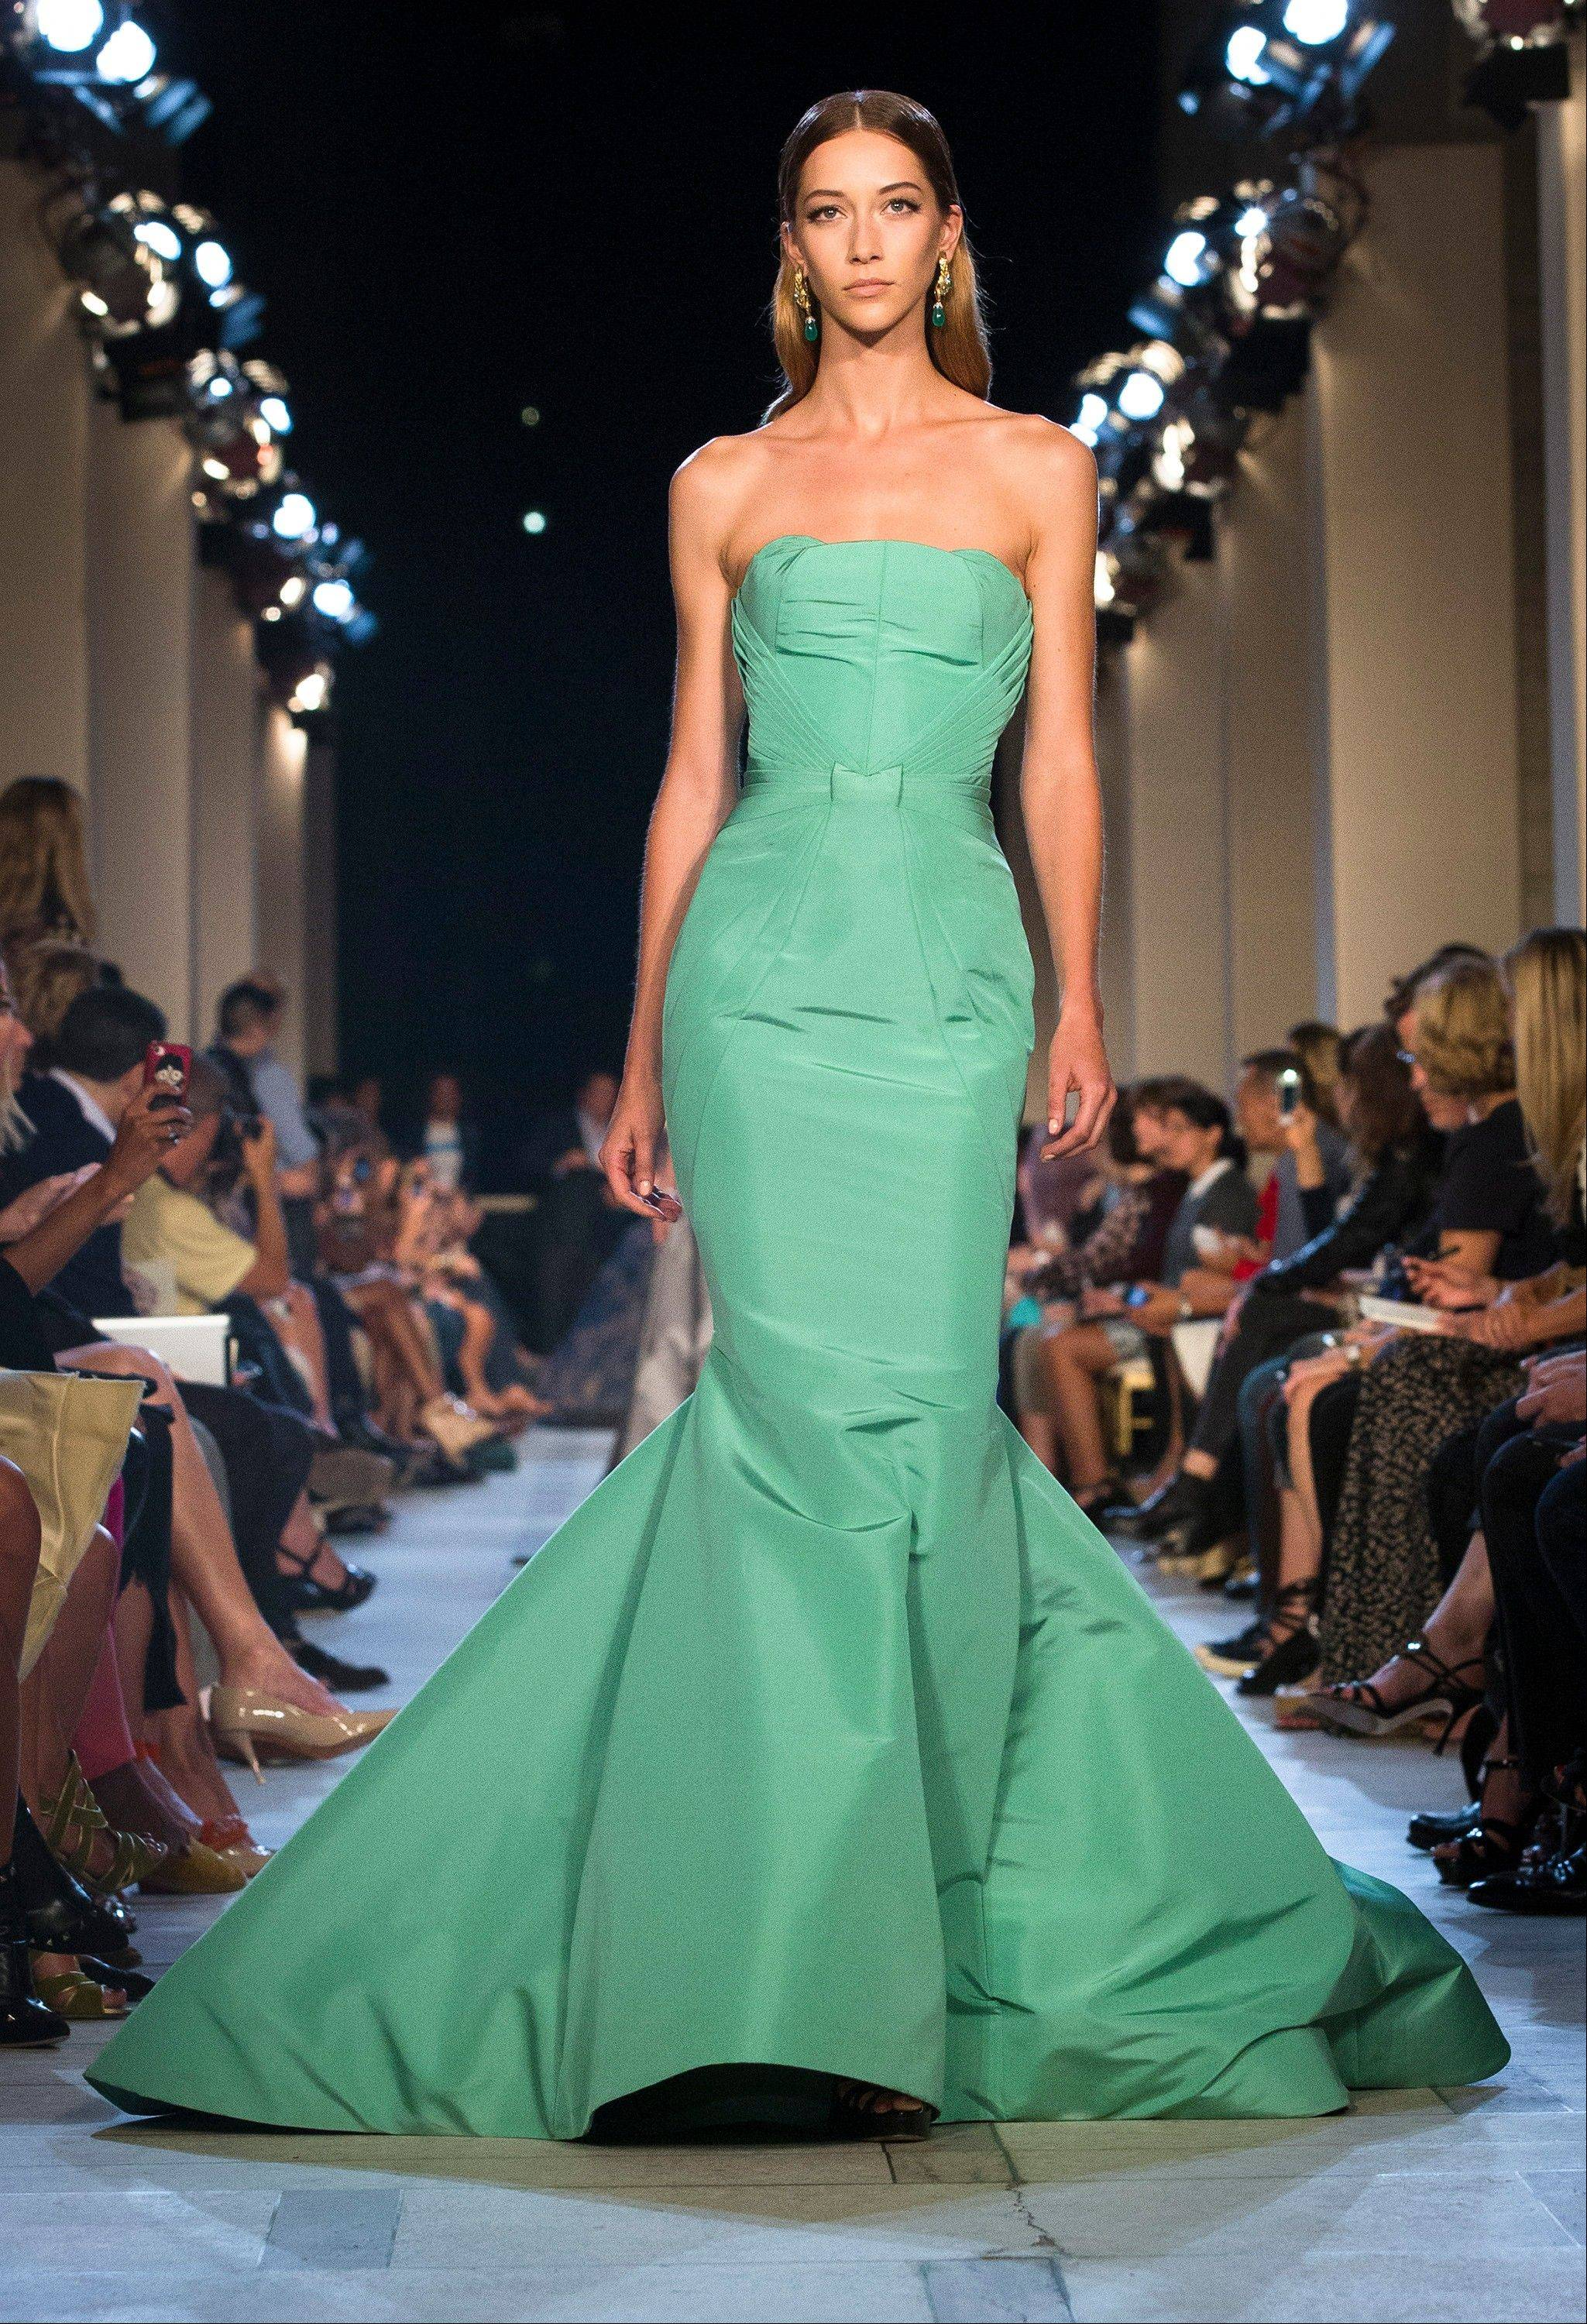 A dress from the Zac Posen spring 2013 collection features the rich, vibrant shade of emerald green.